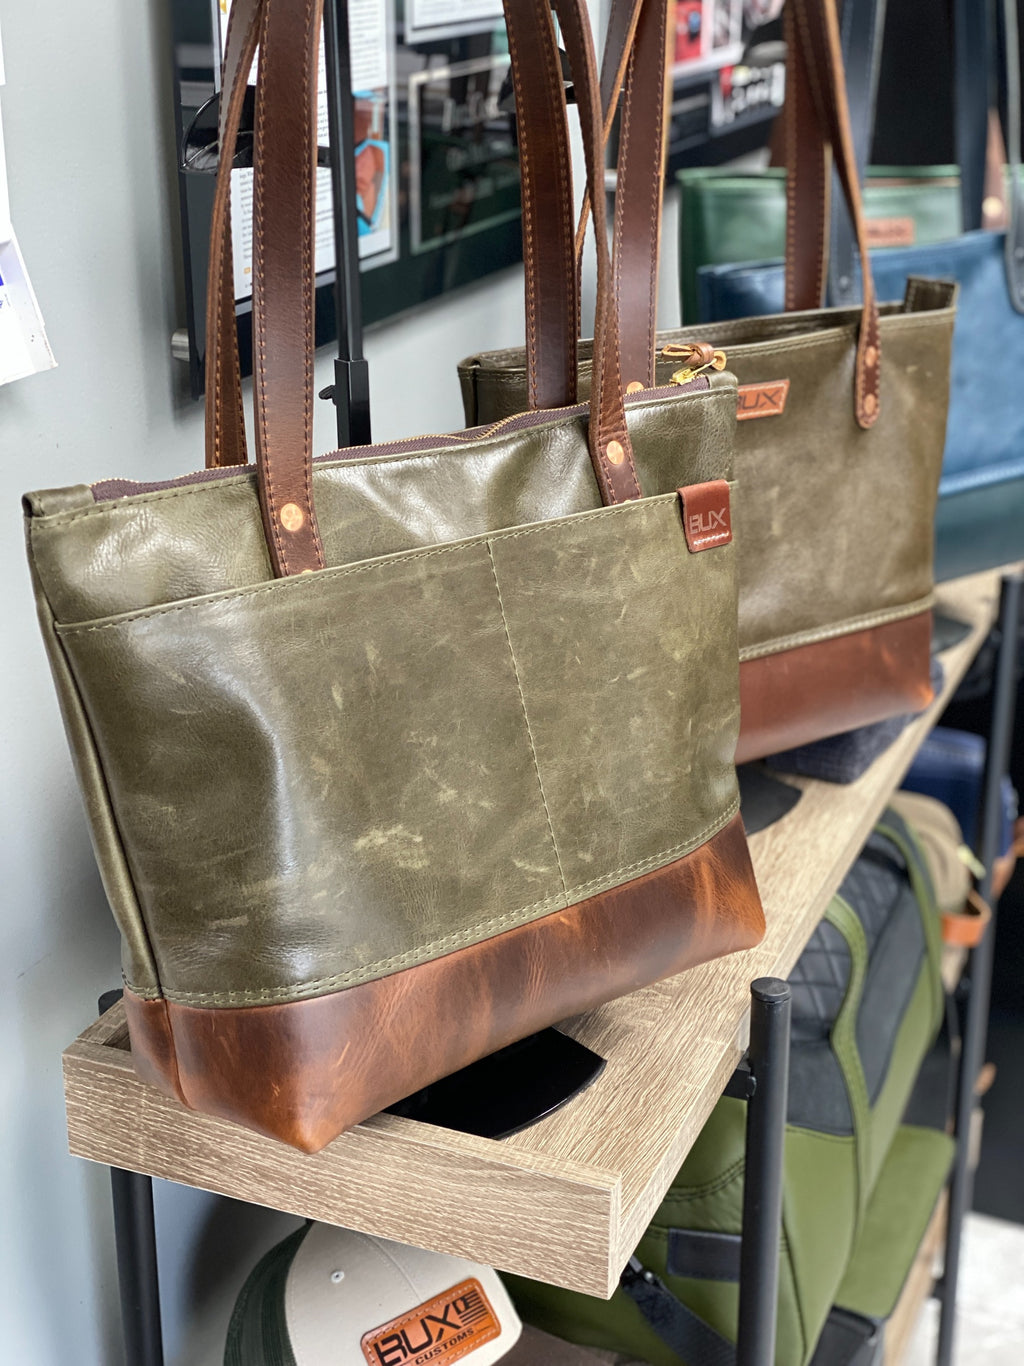 American made leather bags for men and women